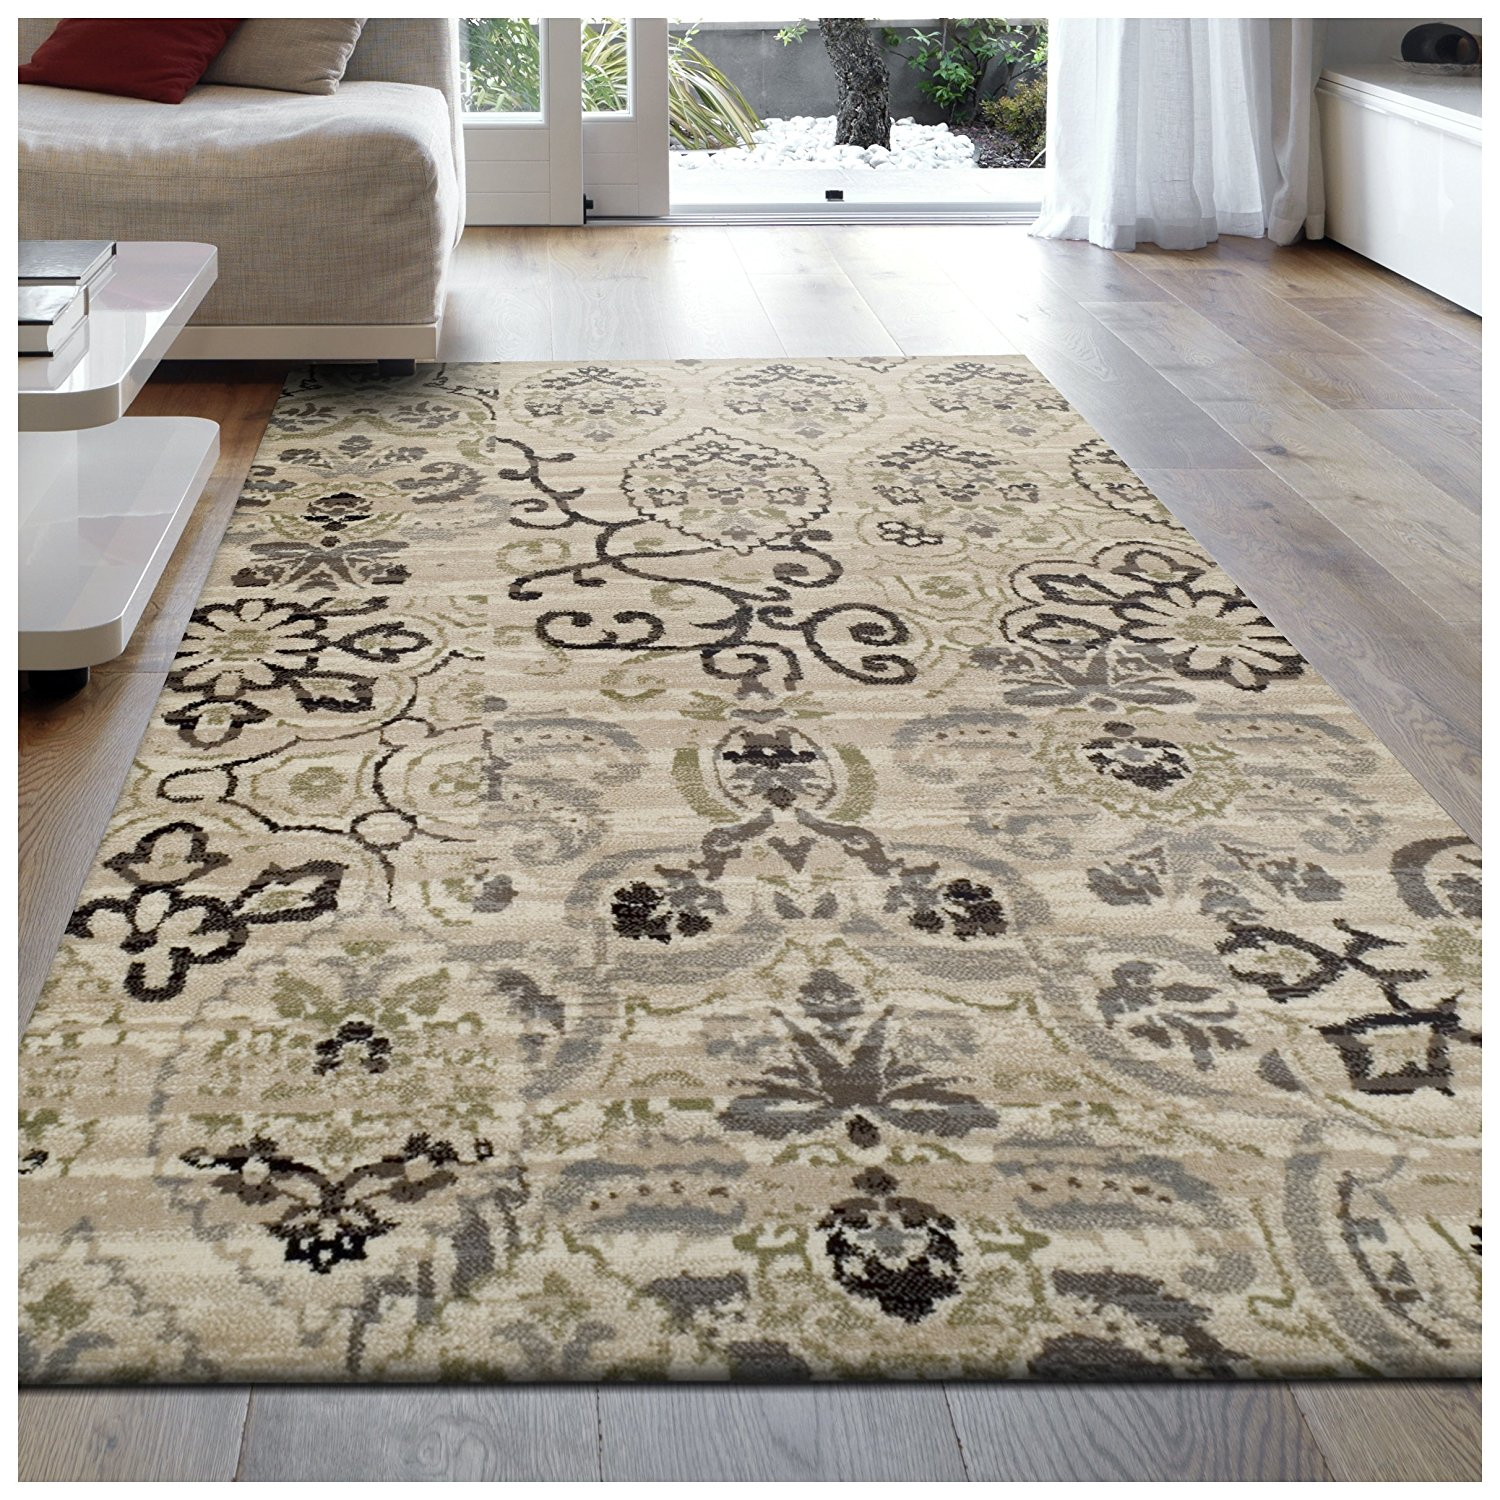 Foyer Rug : Foyer rugs that won t break the bank maison mass